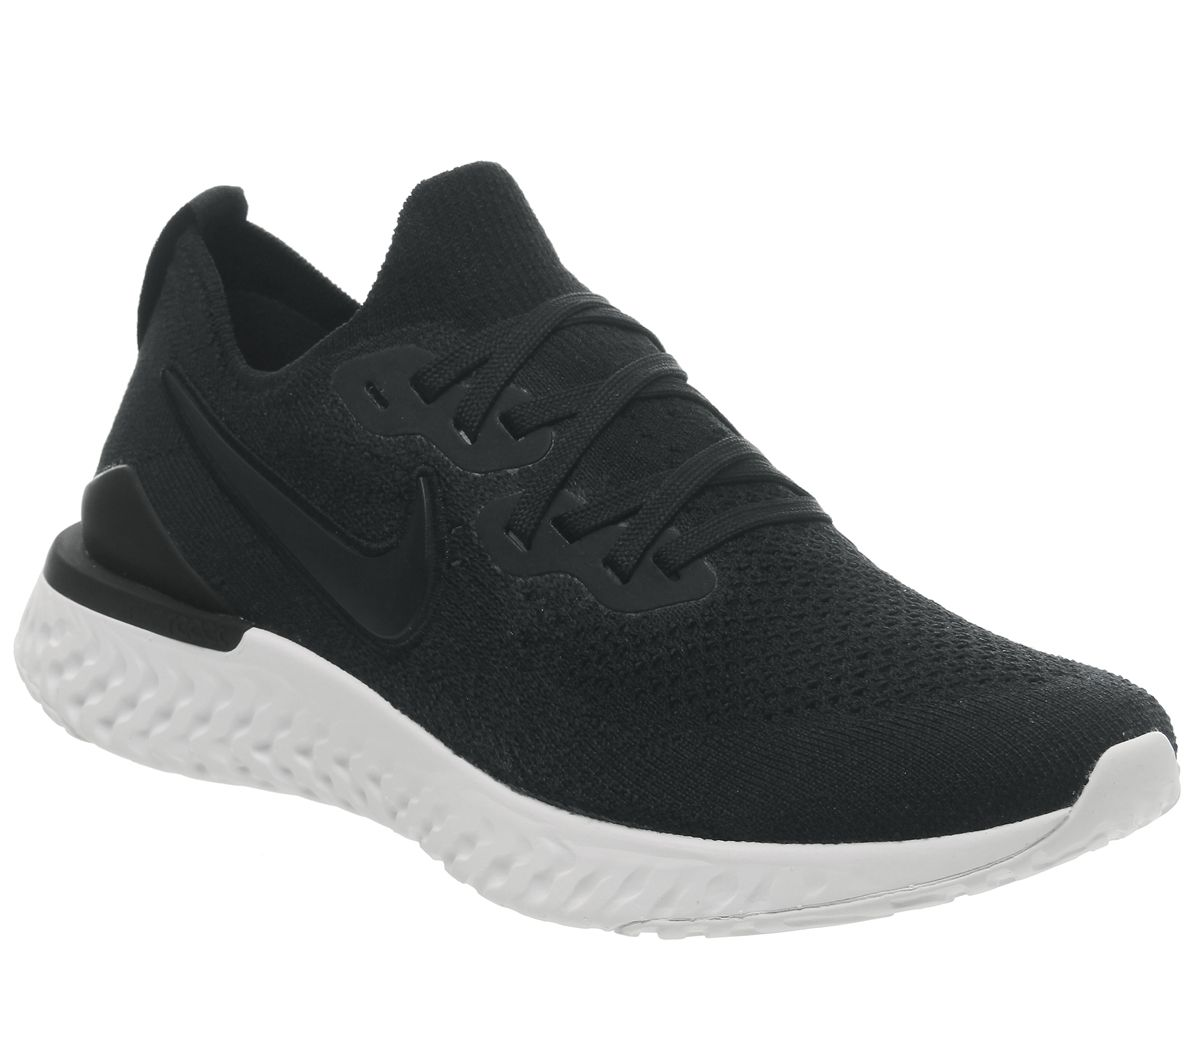 cff2acc5ad42a Nike Epic React Flyknit Trainers Black White - Hers trainers